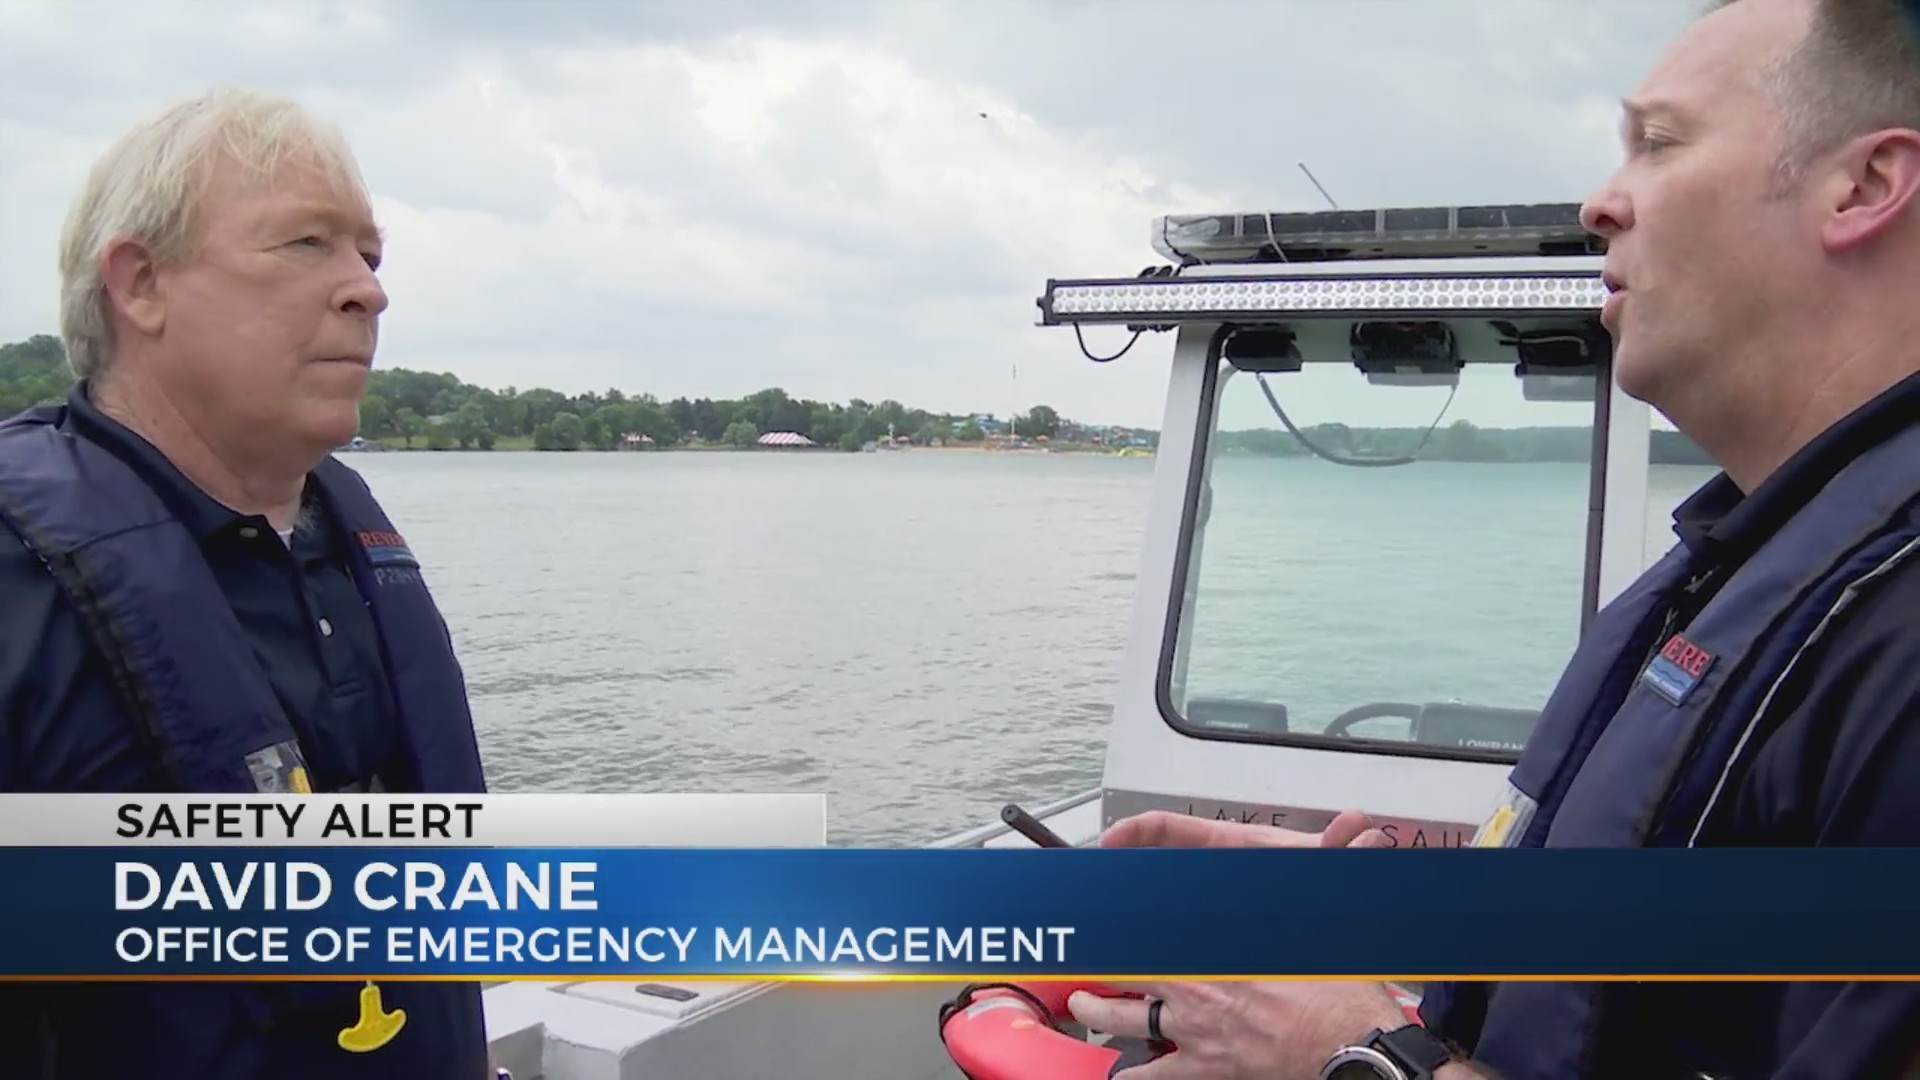 Rescue teams and water tragedies